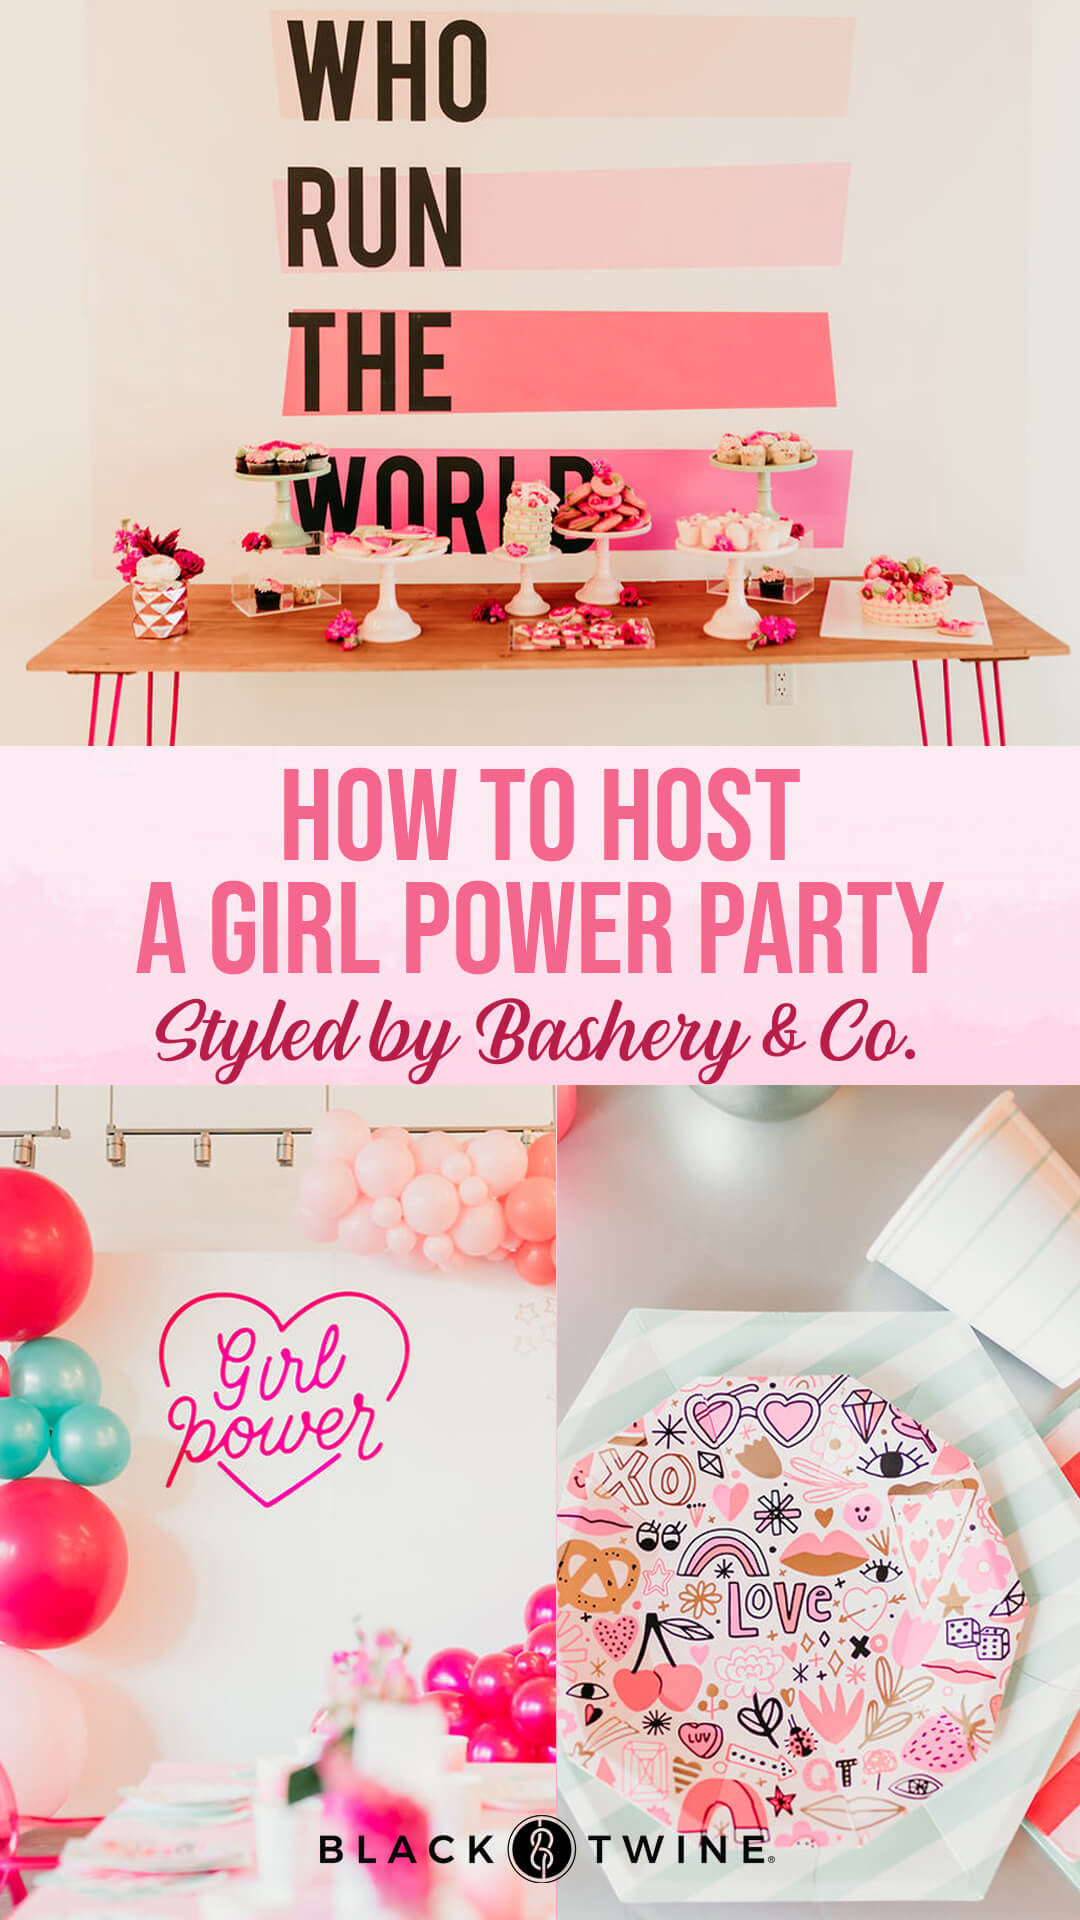 Tablescape, Place Setting and Girl Power Sign from Girl Power Party Styled by Bashery & Co. | Black Twine